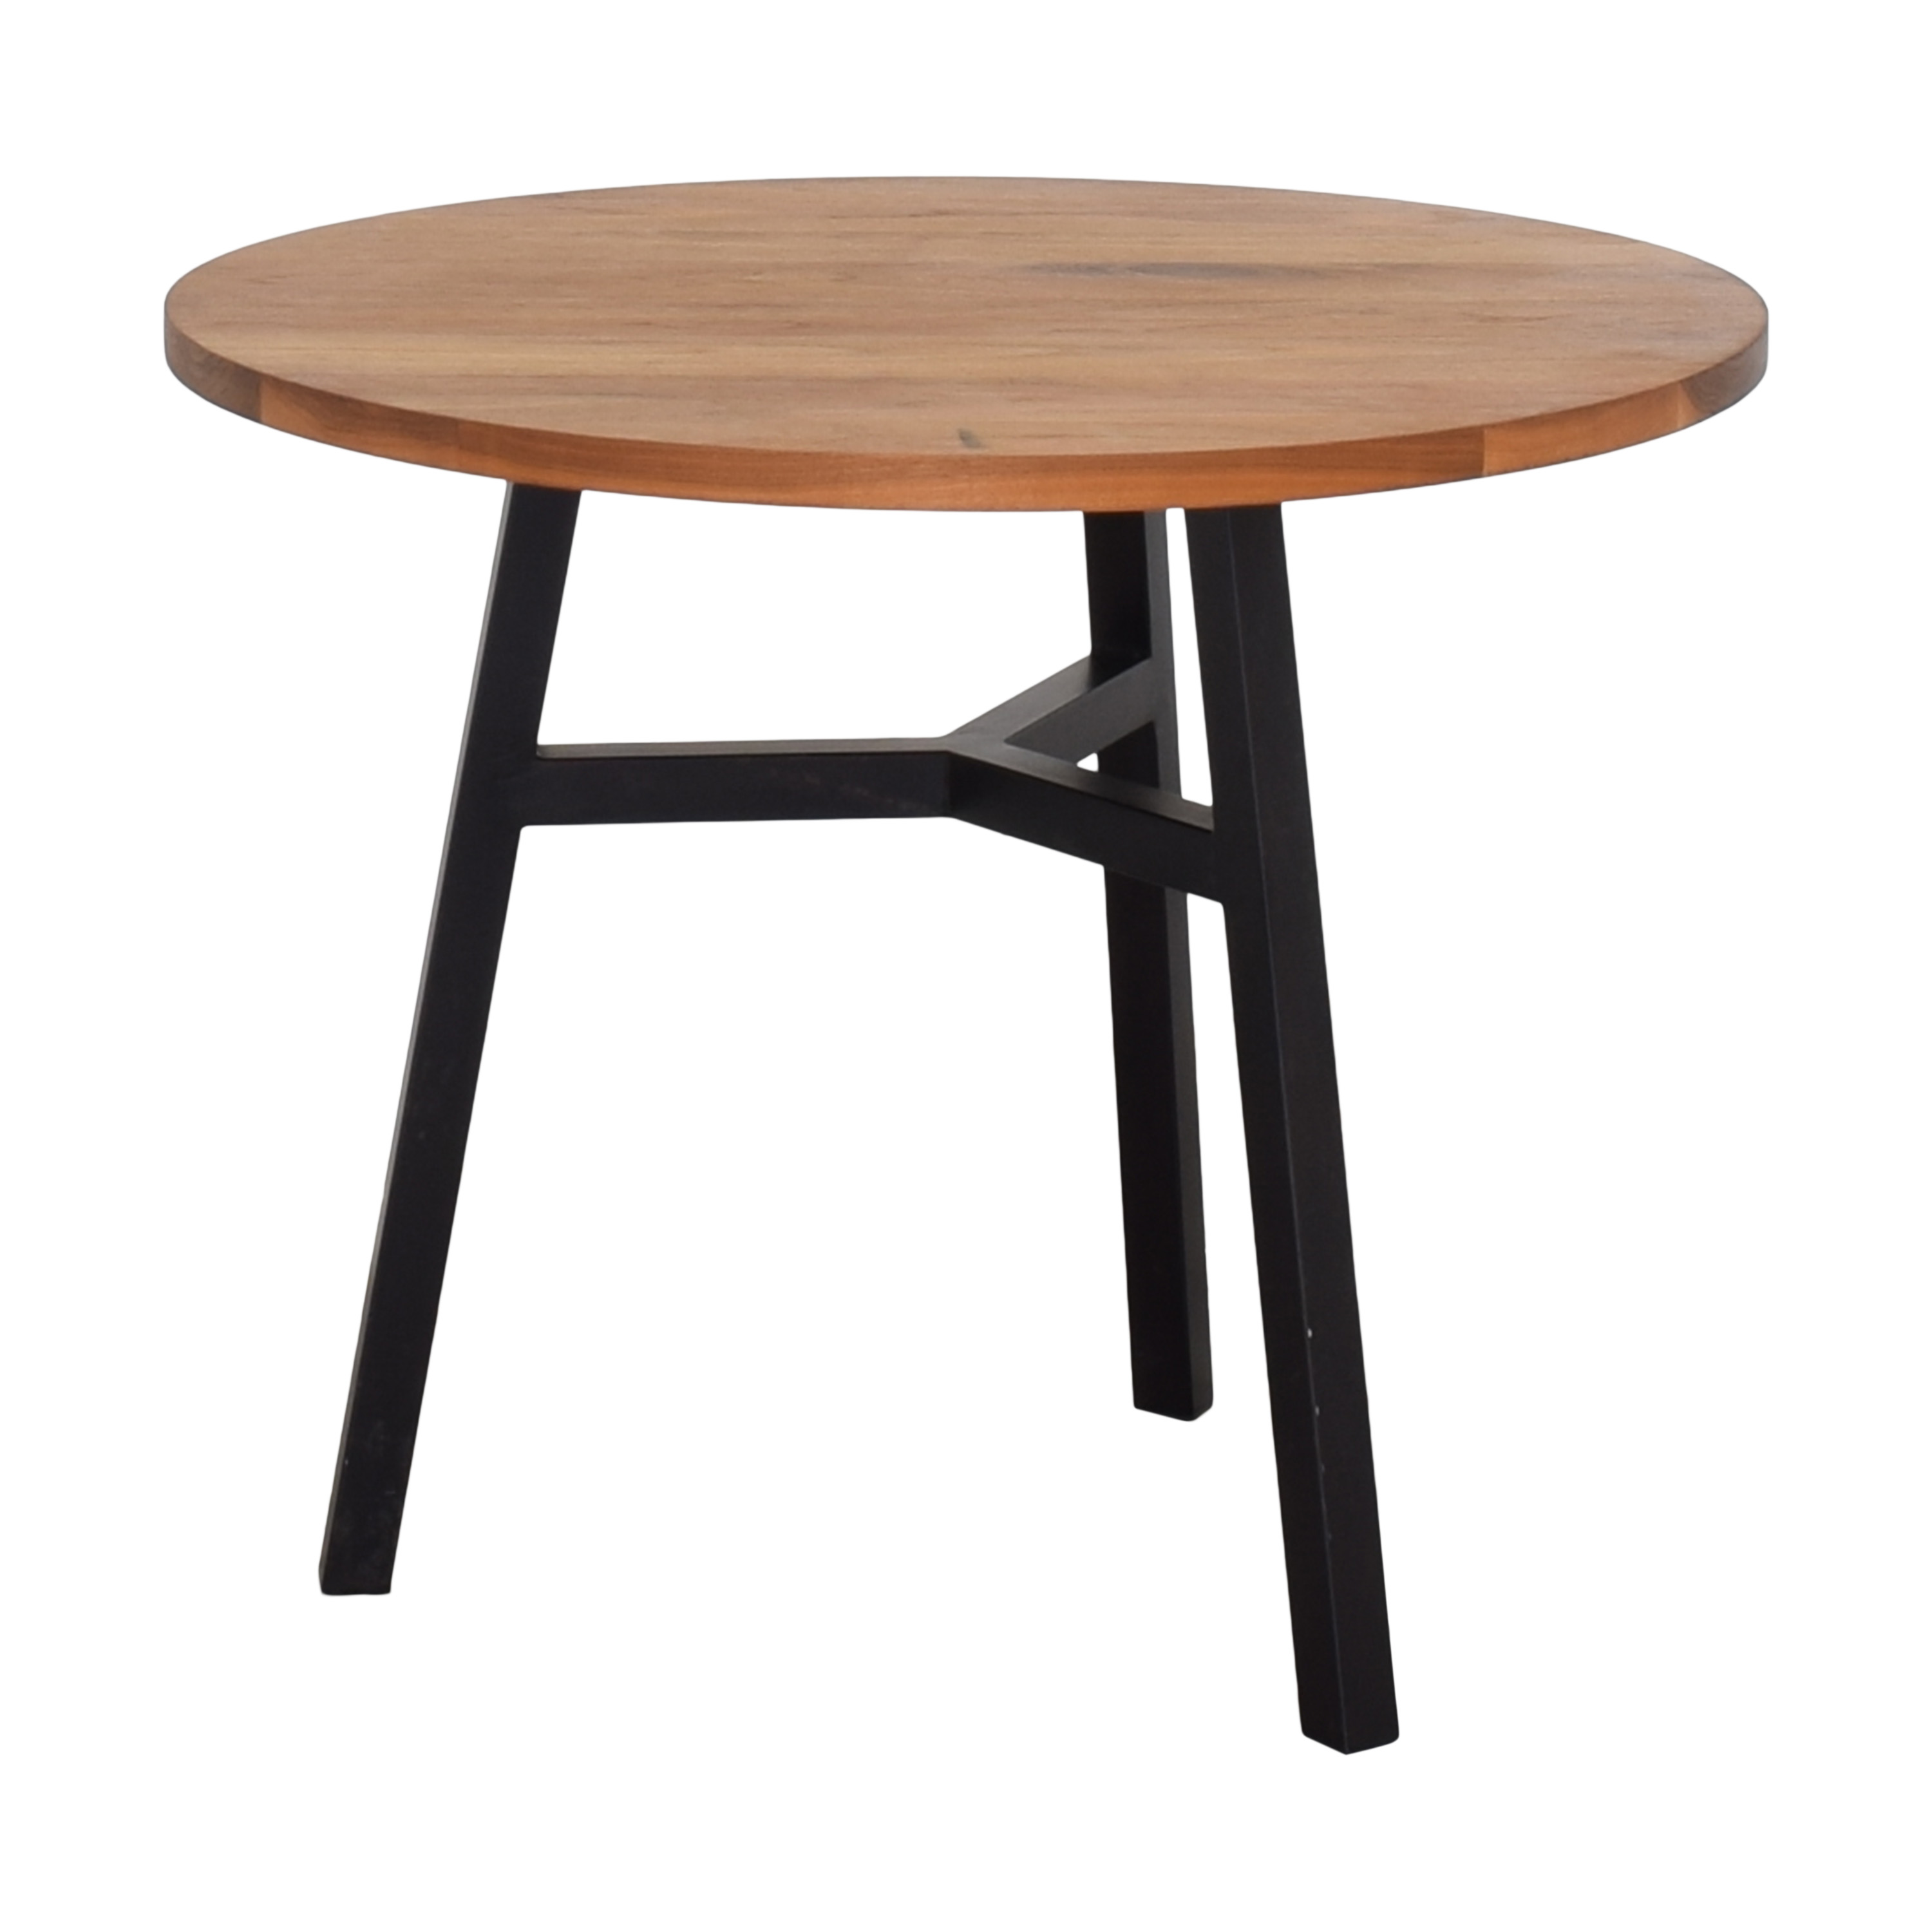 buy OHIO Design Tripod Dining or Meeting Table OHIO Design Dinner Tables